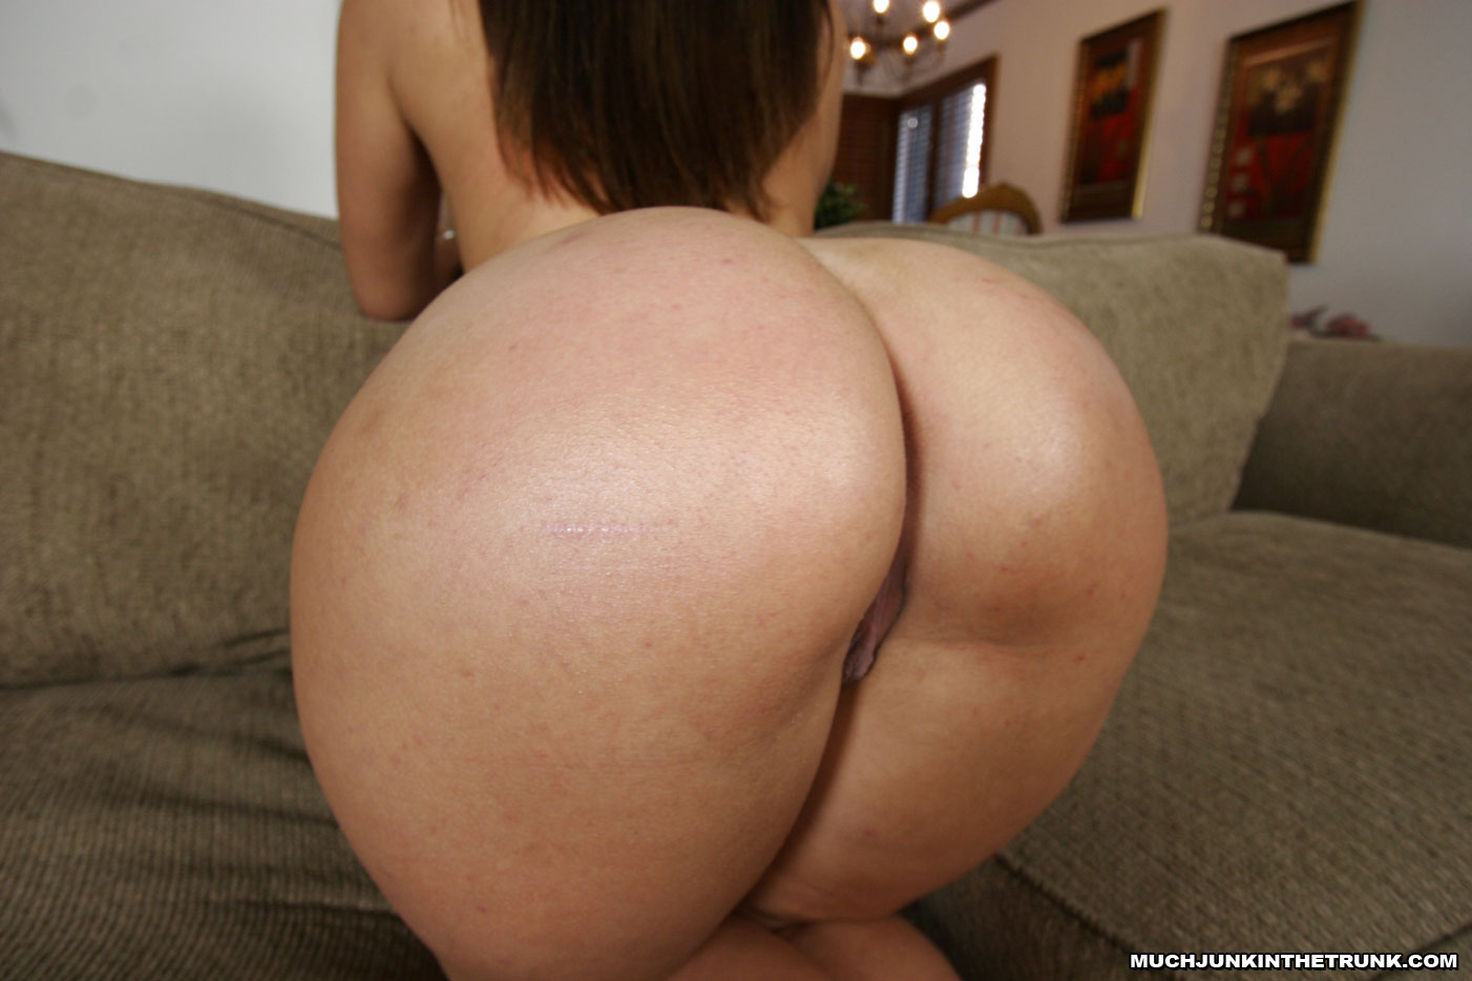 Big ass porn xxx videos